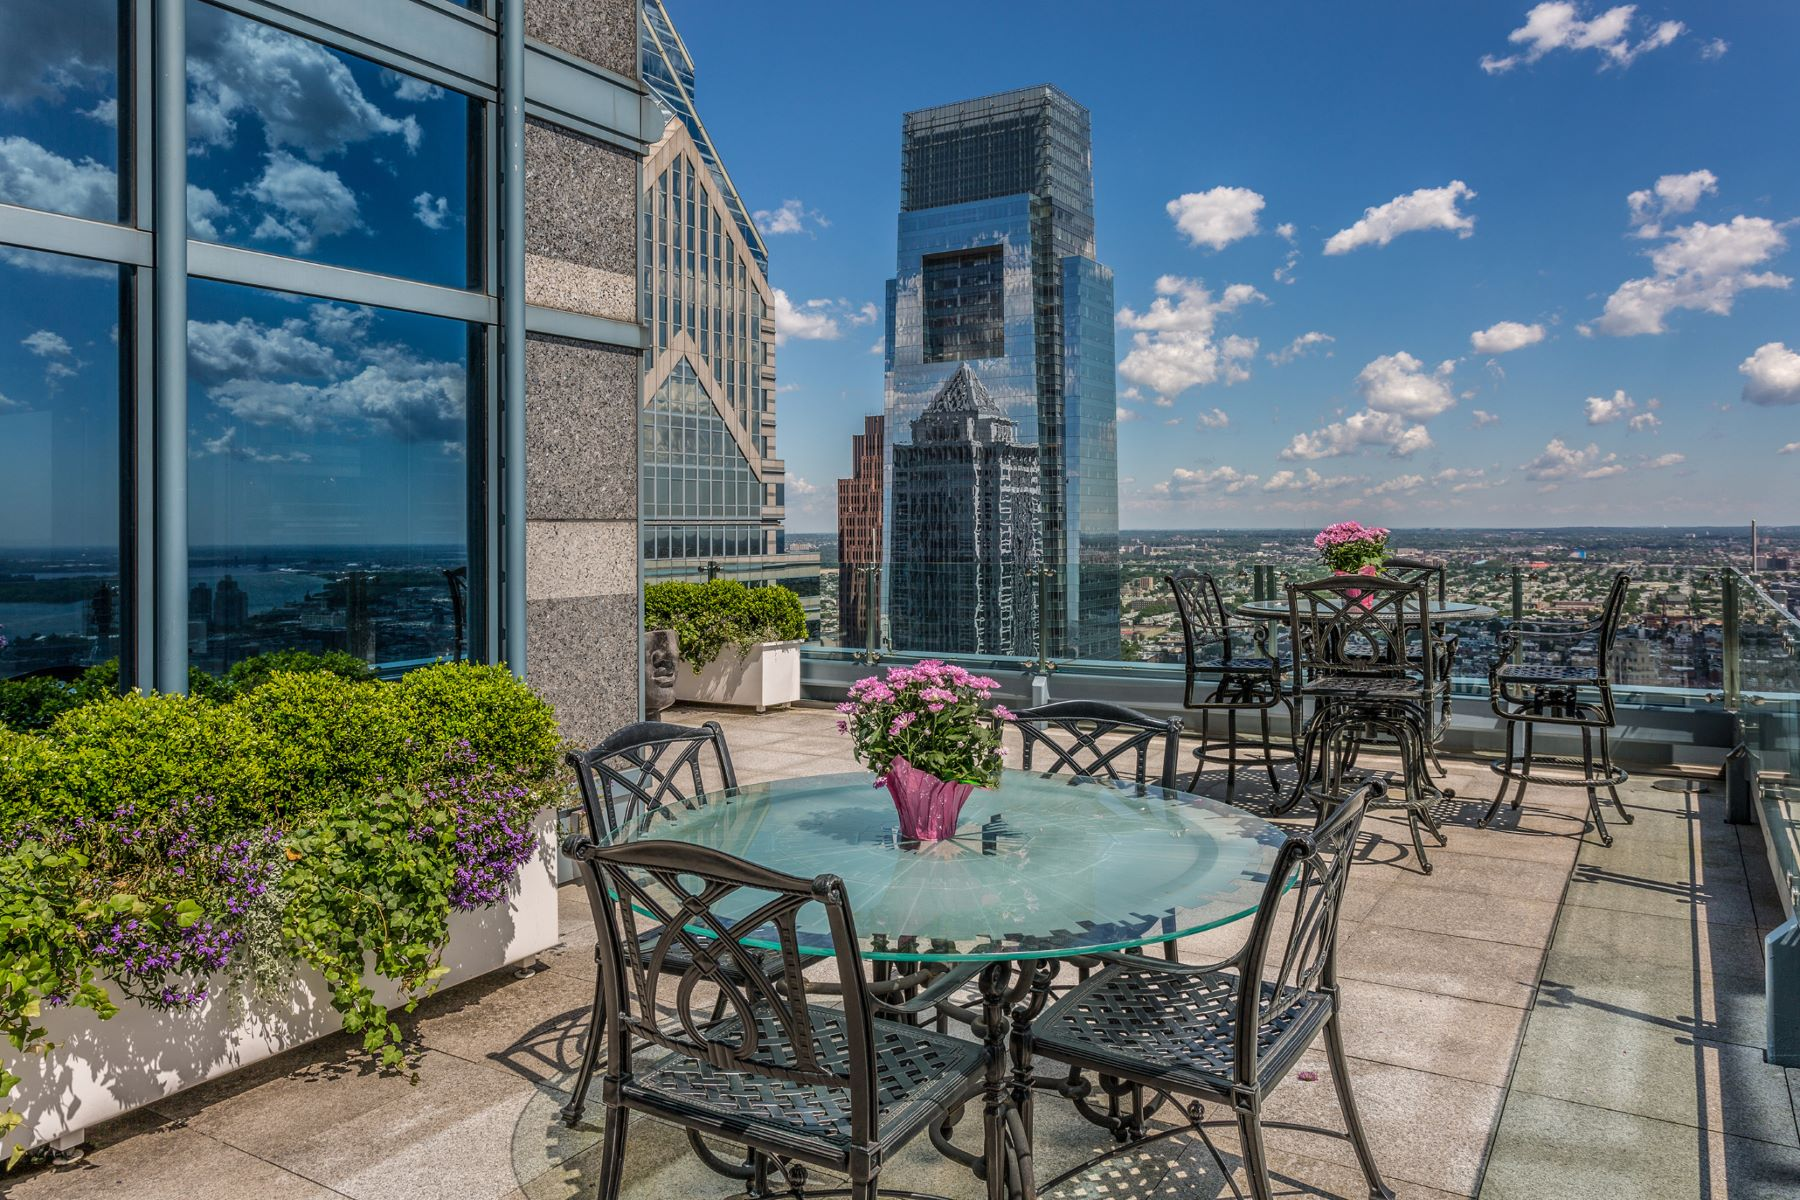 Condominium for Sale at Two Liberty Residence 50 S 16TH ST #4604 4604, Philadelphia, Pennsylvania, 19102 United States